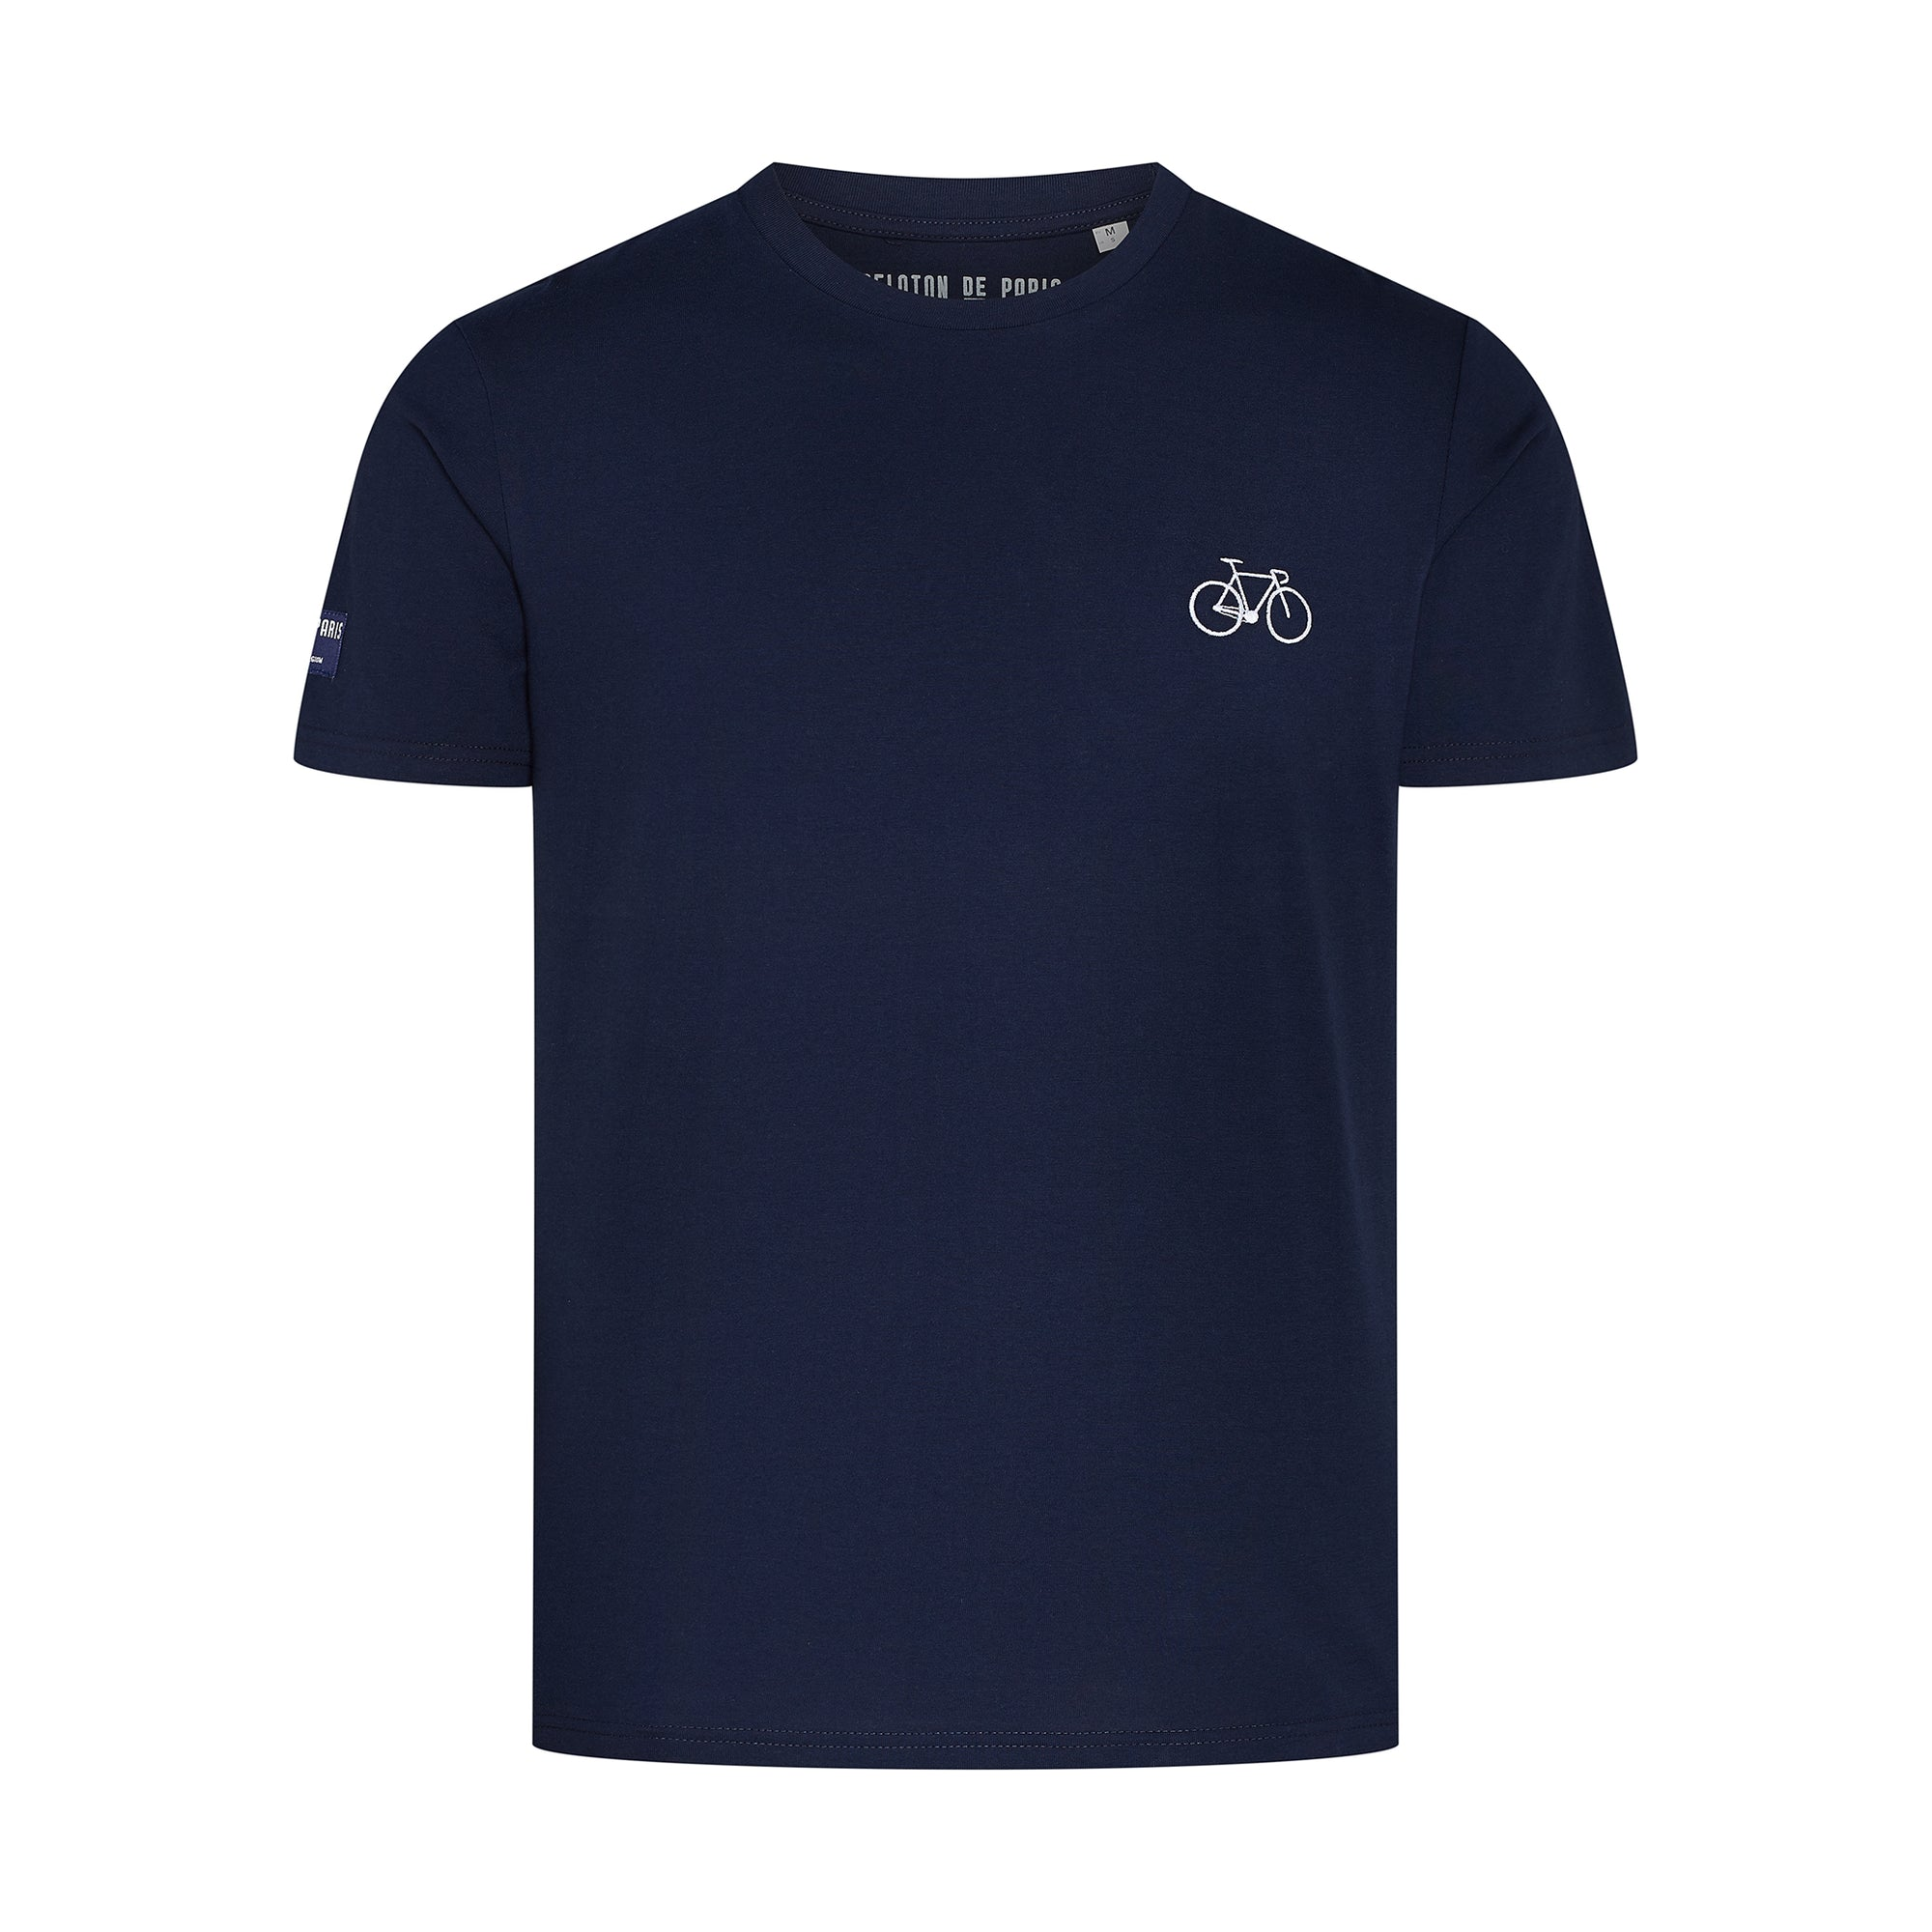 Bike T-Shirt Navy Embroidered